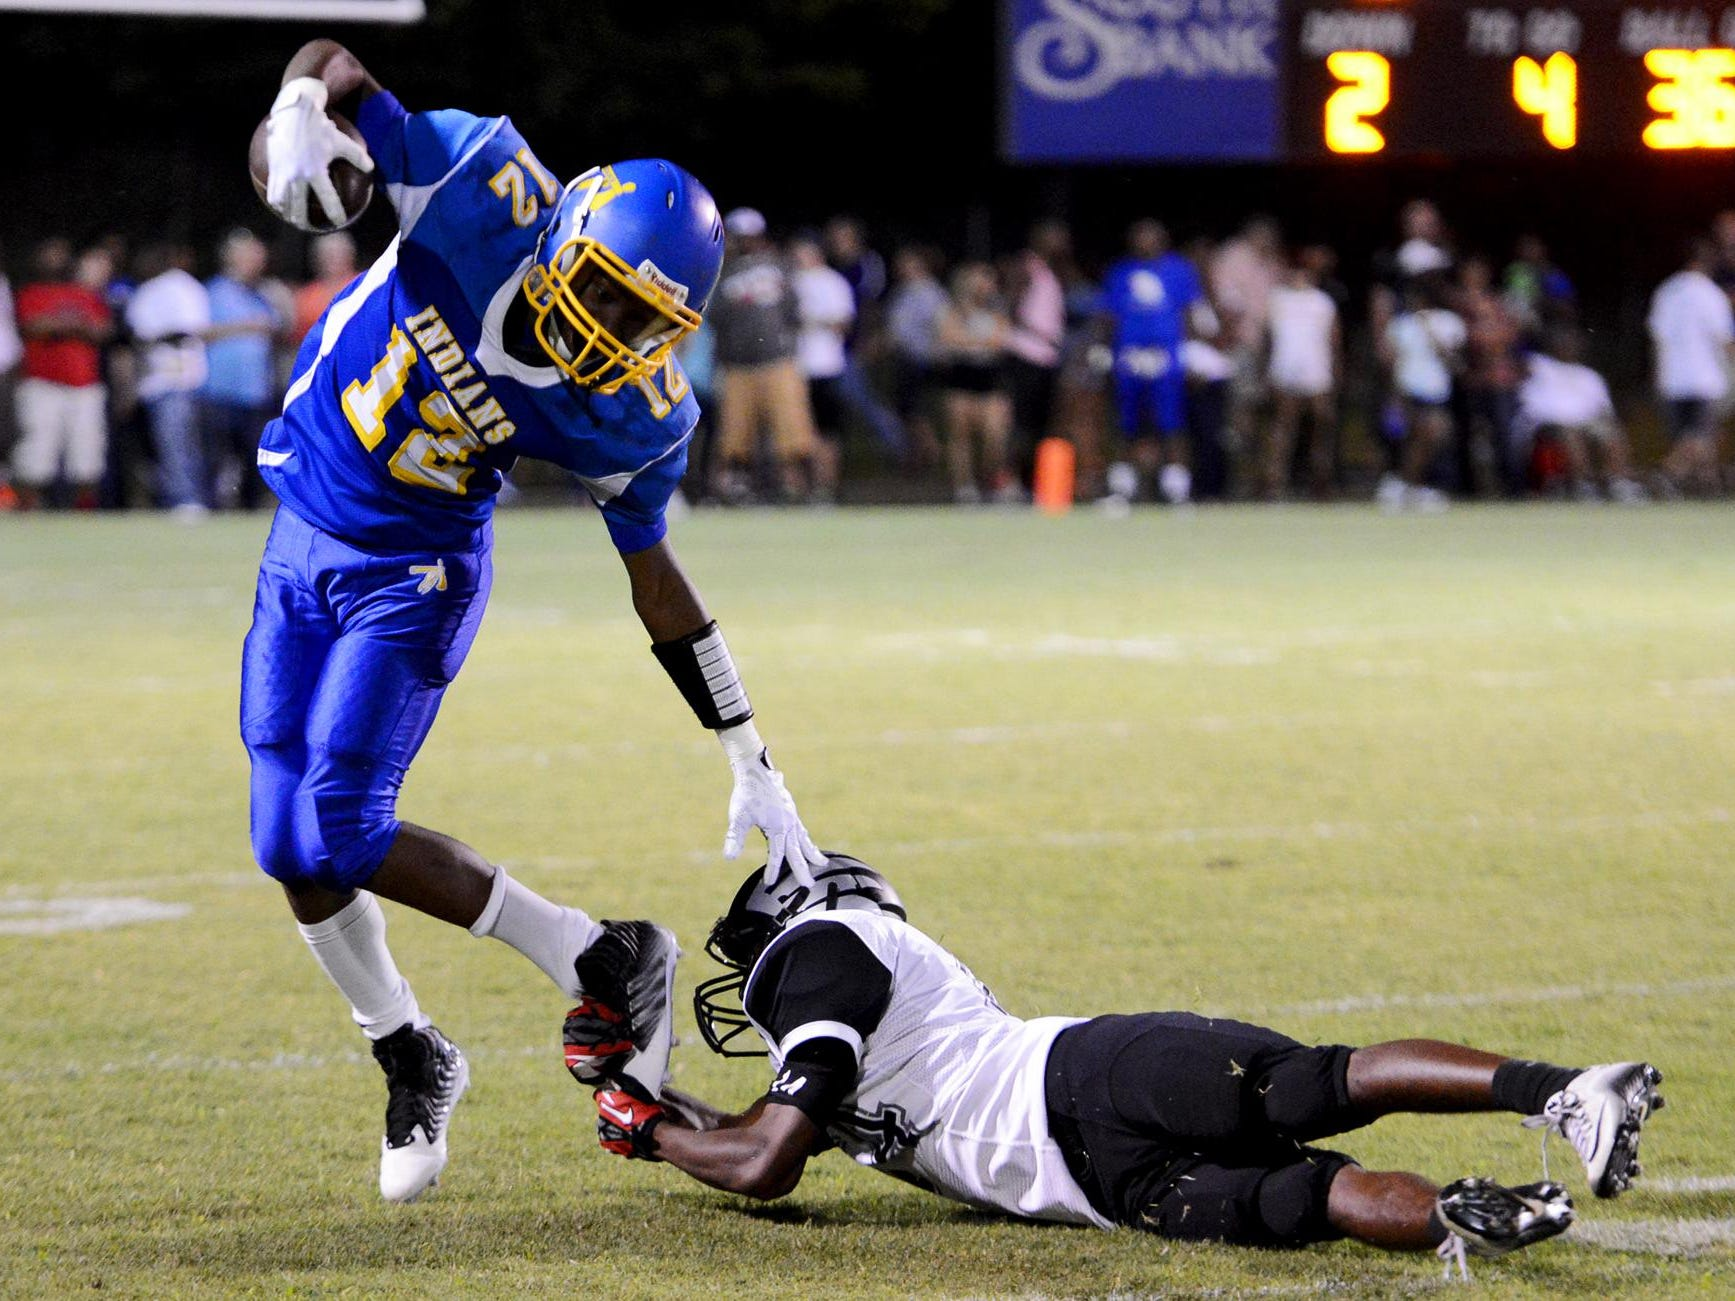 North Side High School's Dexter Pirtle avoids a trip by South Sdie's Shontarrius Word during their game at the 2015 Sports PLUS Jamboree, Friday.